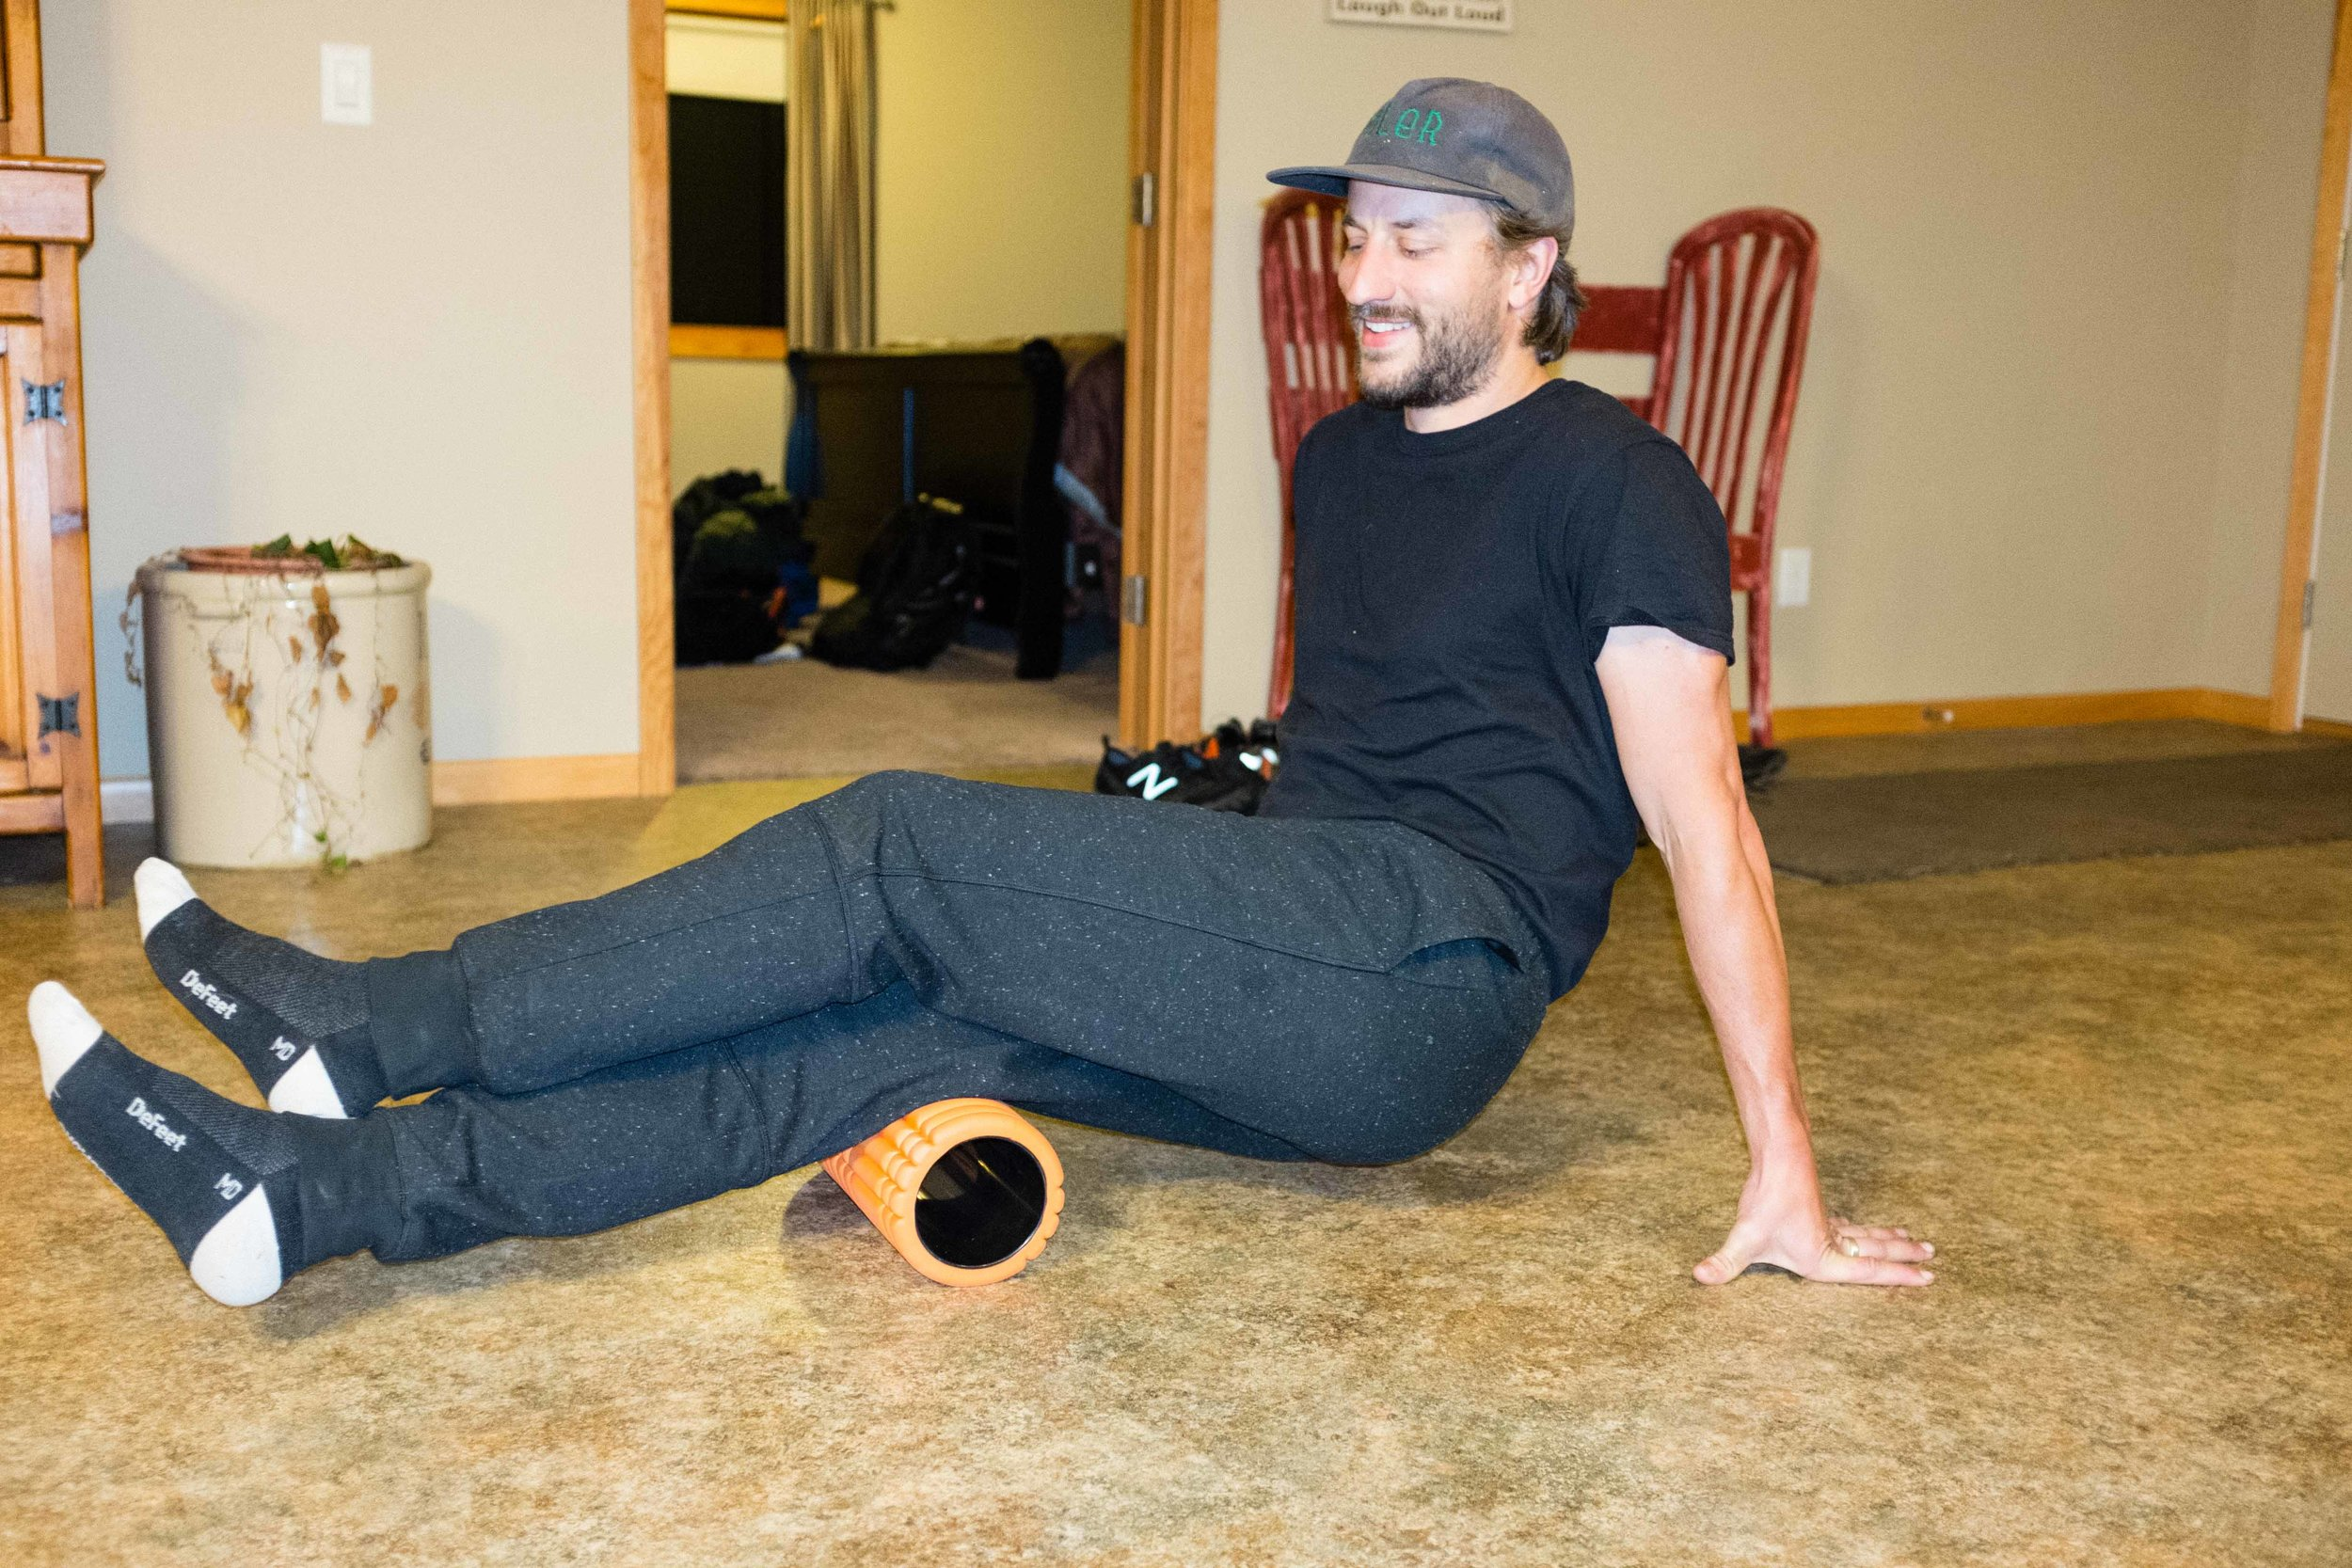 Here's Dan rolling out those muscles the night before the race. All of us would take a few moments to painfully loosen up those hip flexors. Because, stretching before strenuous activity is important. Pro tip.